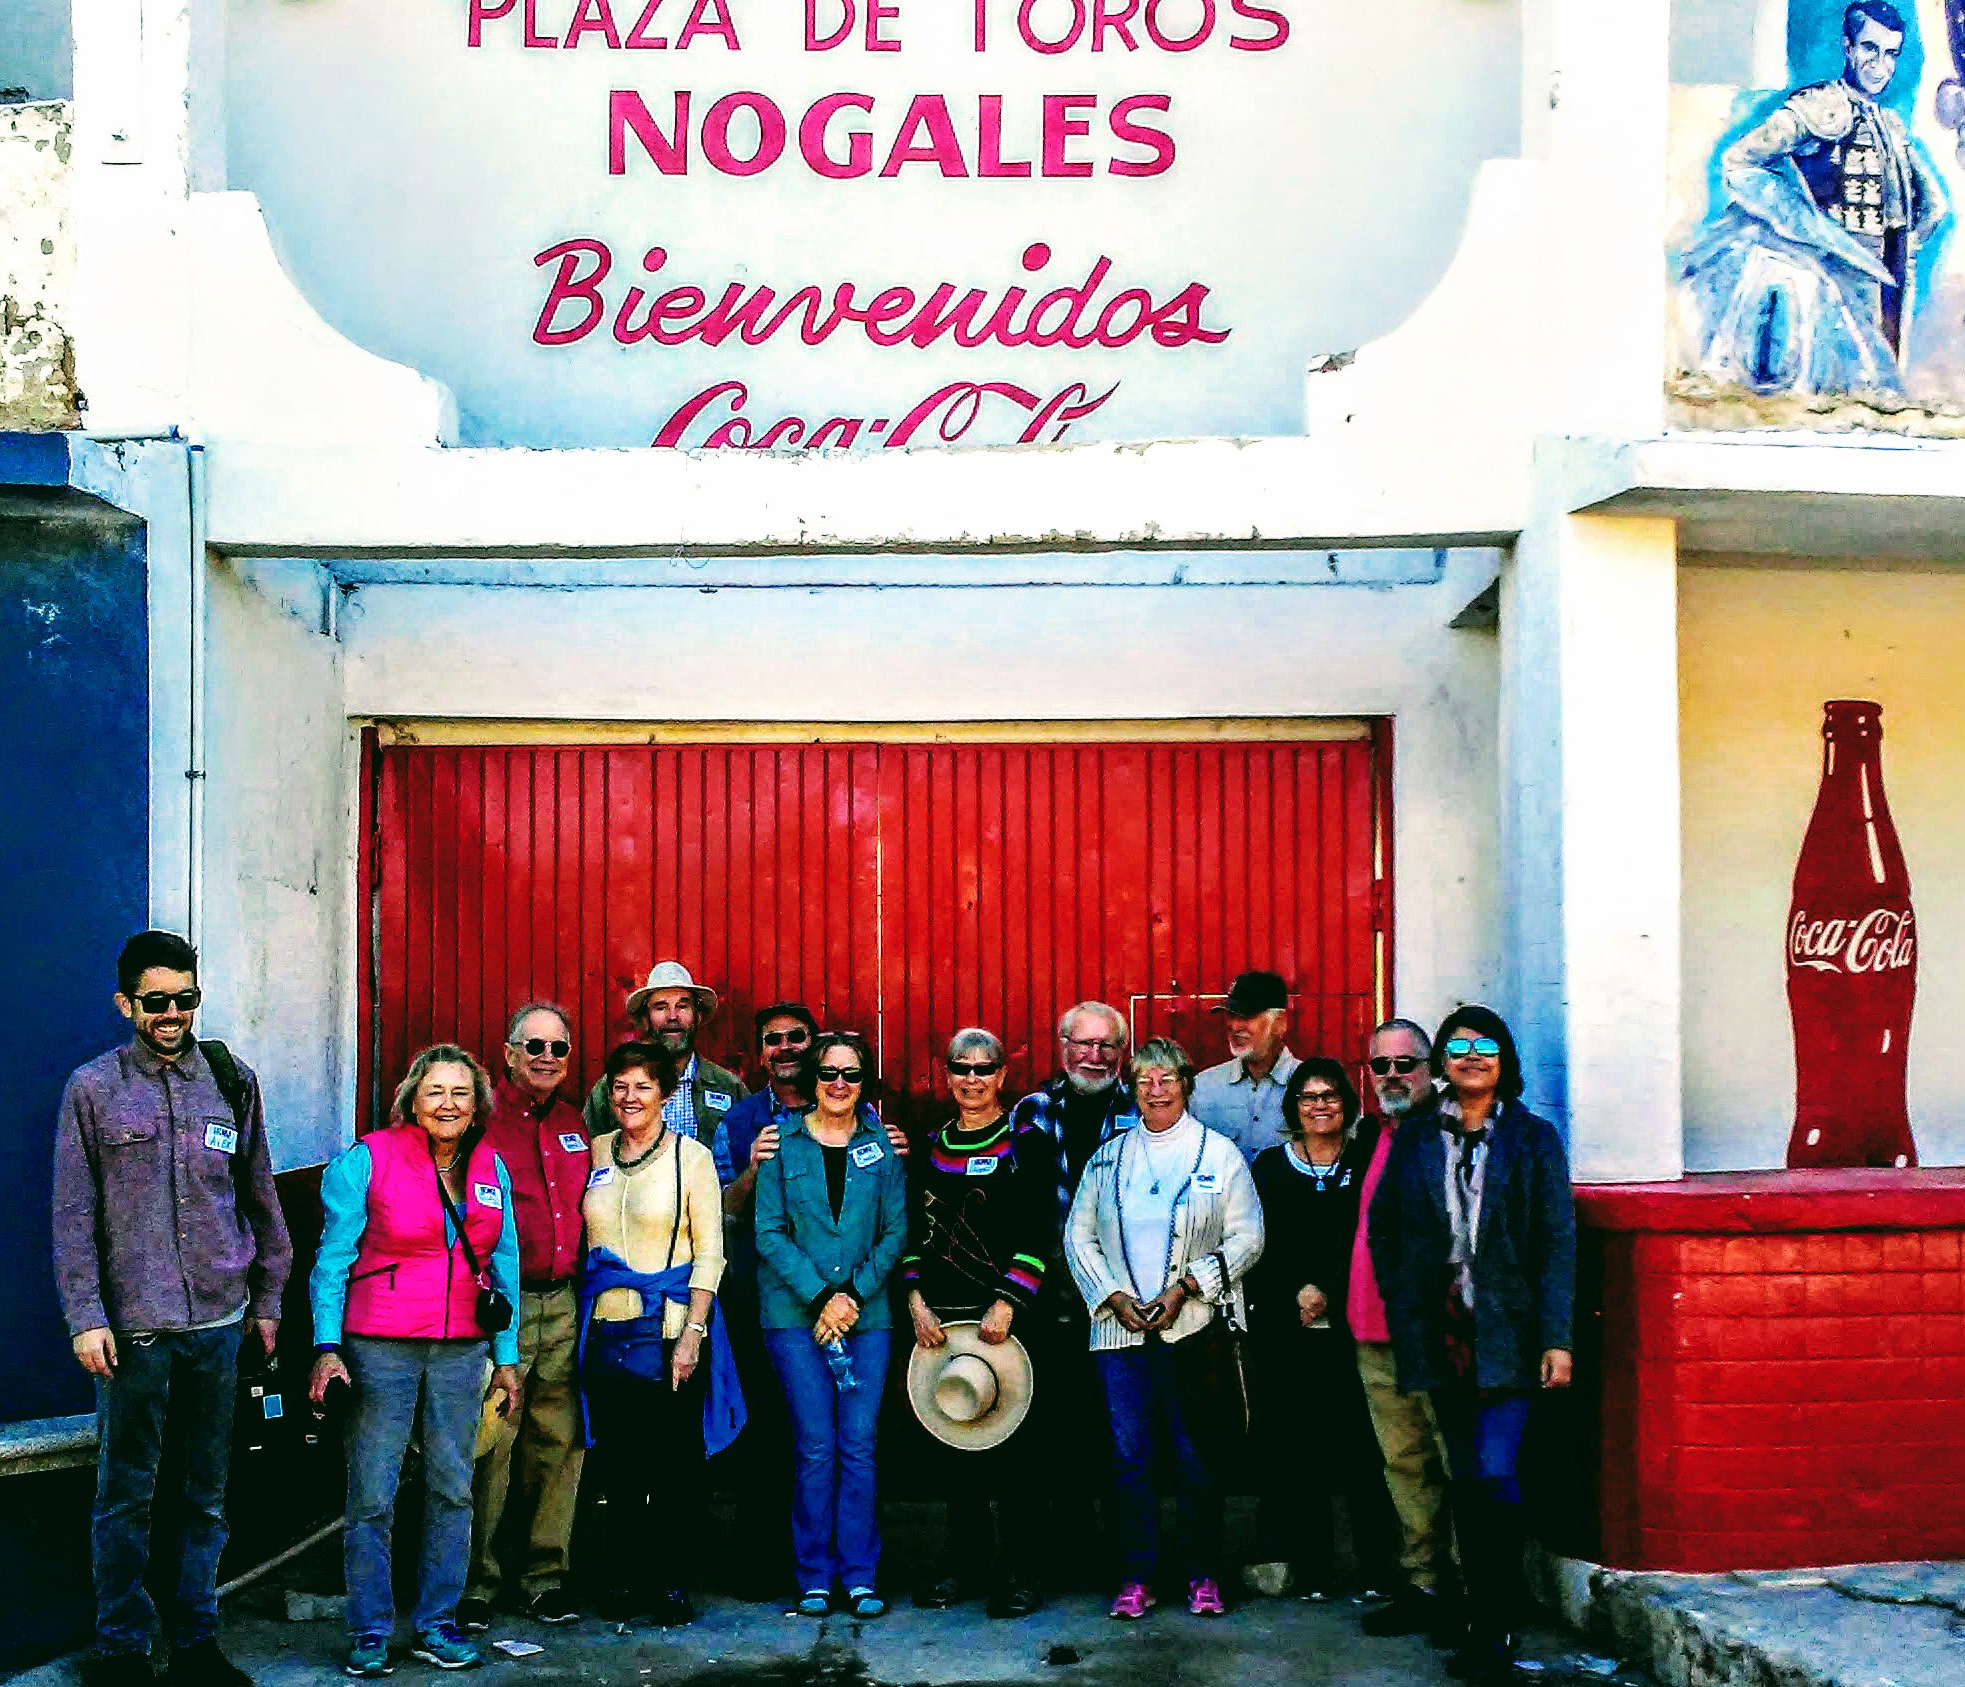 Cross Border Tours - Nonprofit BCA offers cross-border intercultural experiences from Arizona into Sonora, Mexico and beyond for anyone interested in learning first-hand about the diverse heritage and realities of contemporary life in the shared border region.